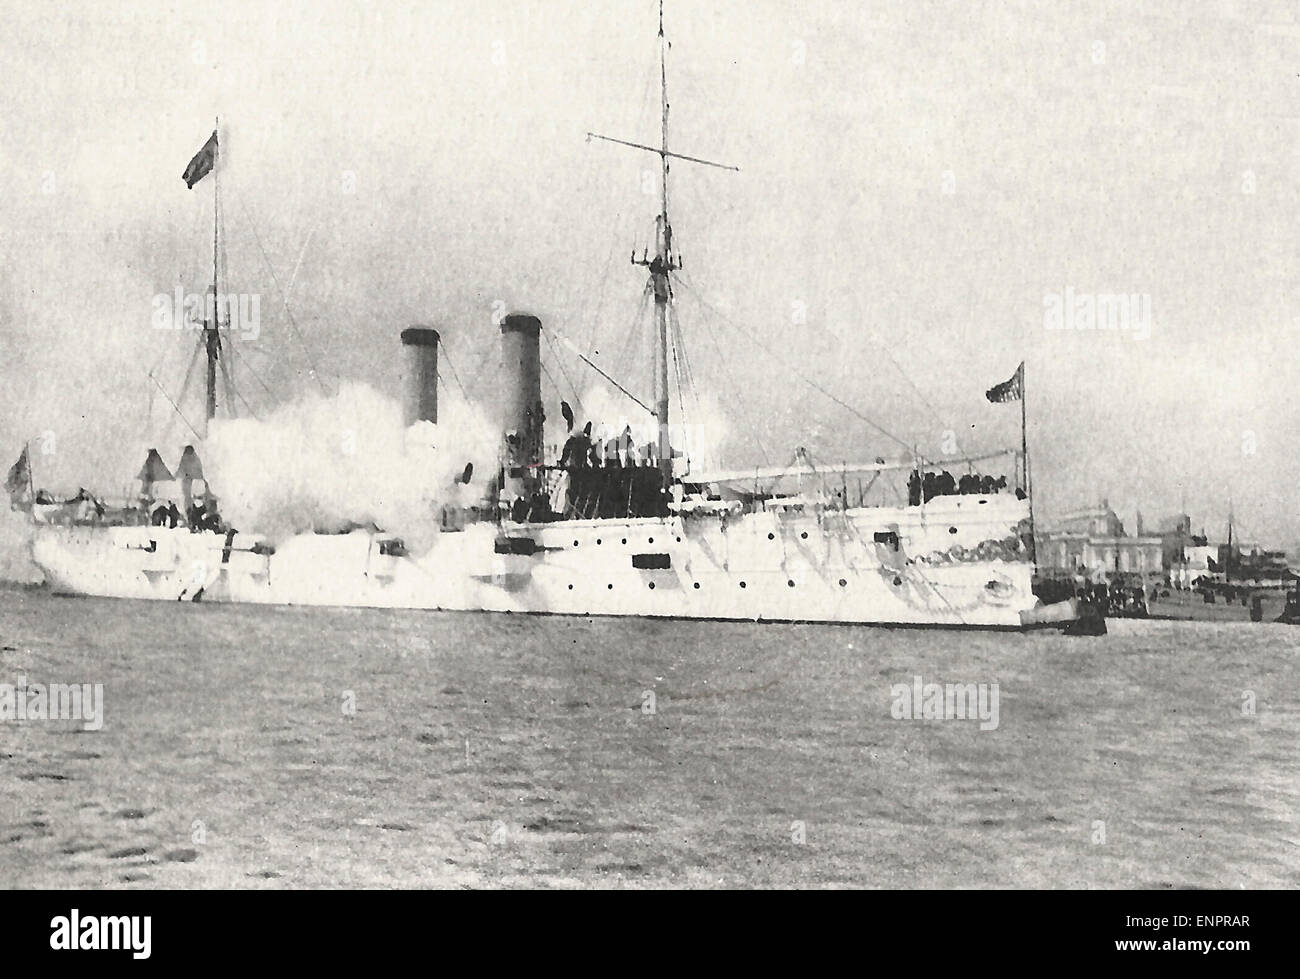 The USS Montgomery saluting on her arrival at Havana, Cuba, circa 1898 - Stock Image